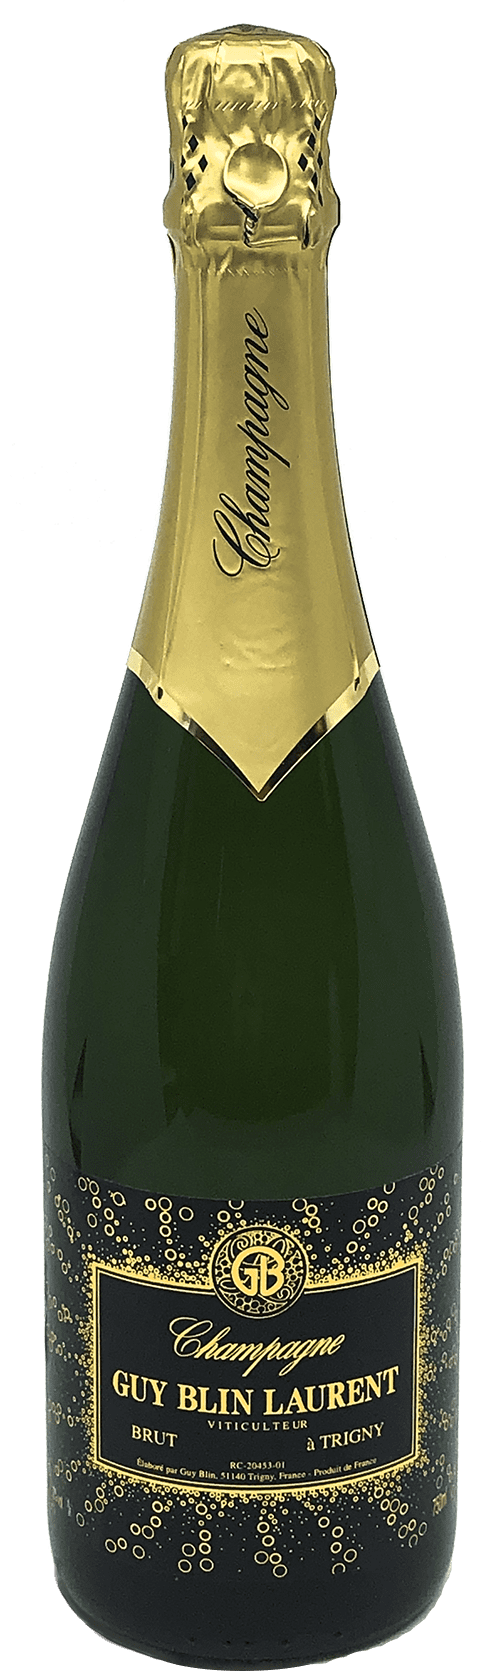 Guy Blin-Laurent Champagne Brut de Terroir